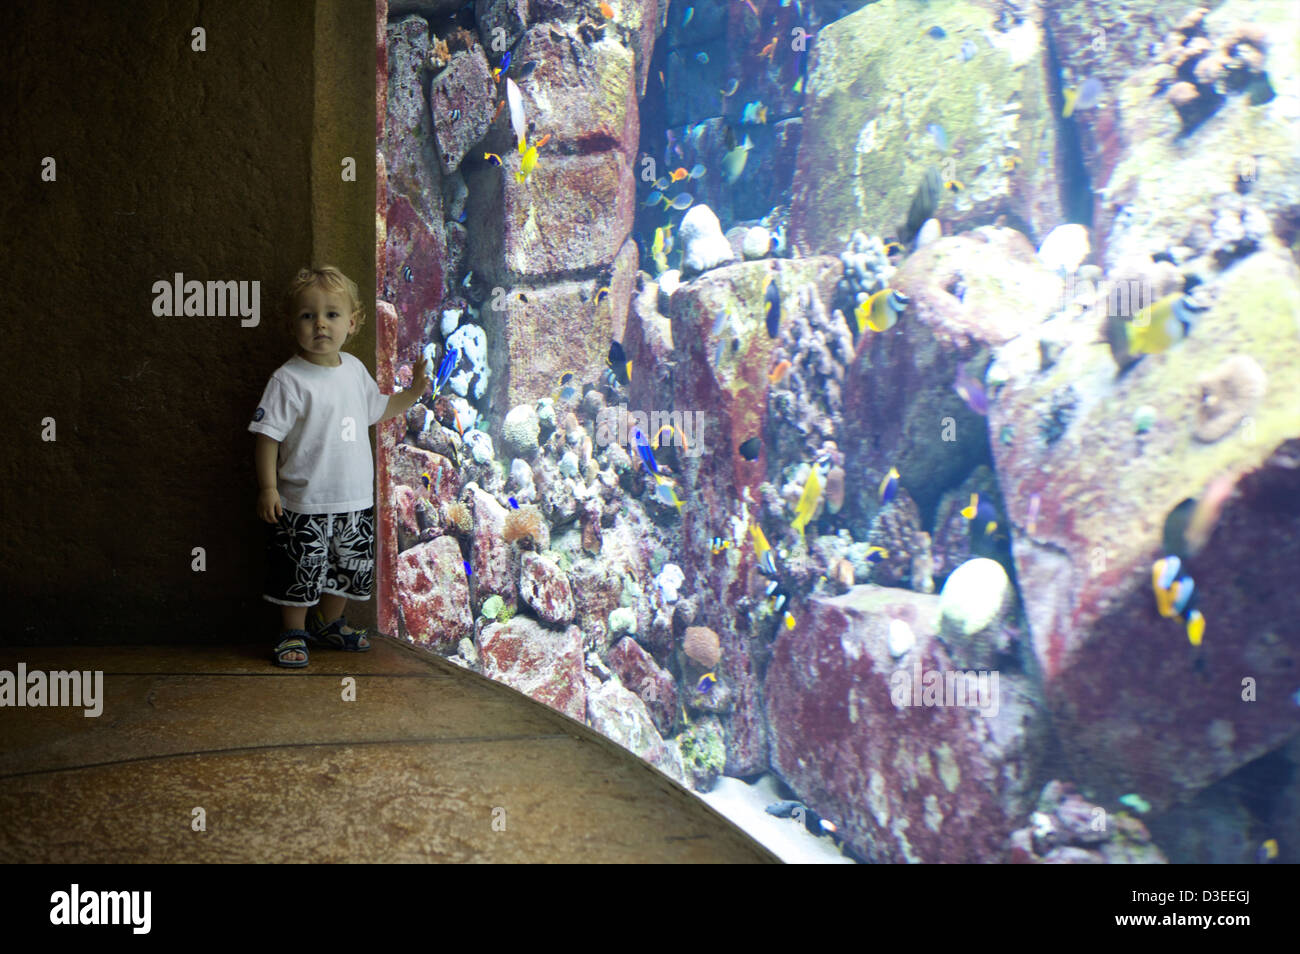 Fish aquarium in uae - A Small Boy In Shorts Stands Next To The Aquarium Fish Tank In The Atlantis Palm Hotel In Dubai Uae